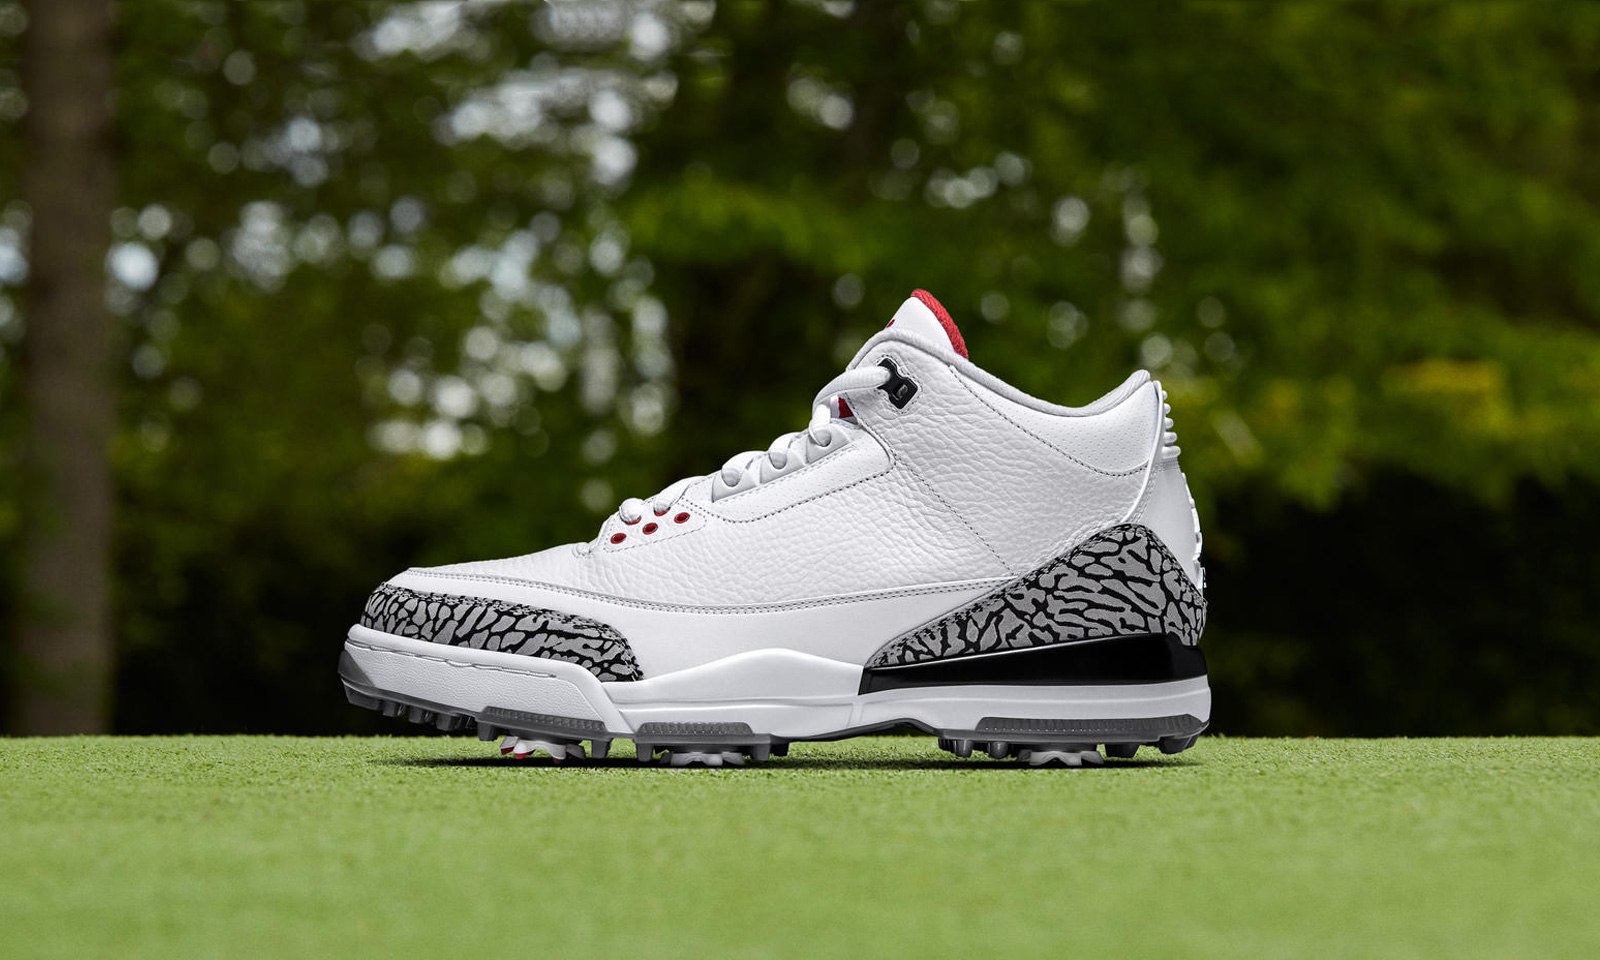 new style c0e59 22437 Air Jordan III Golf